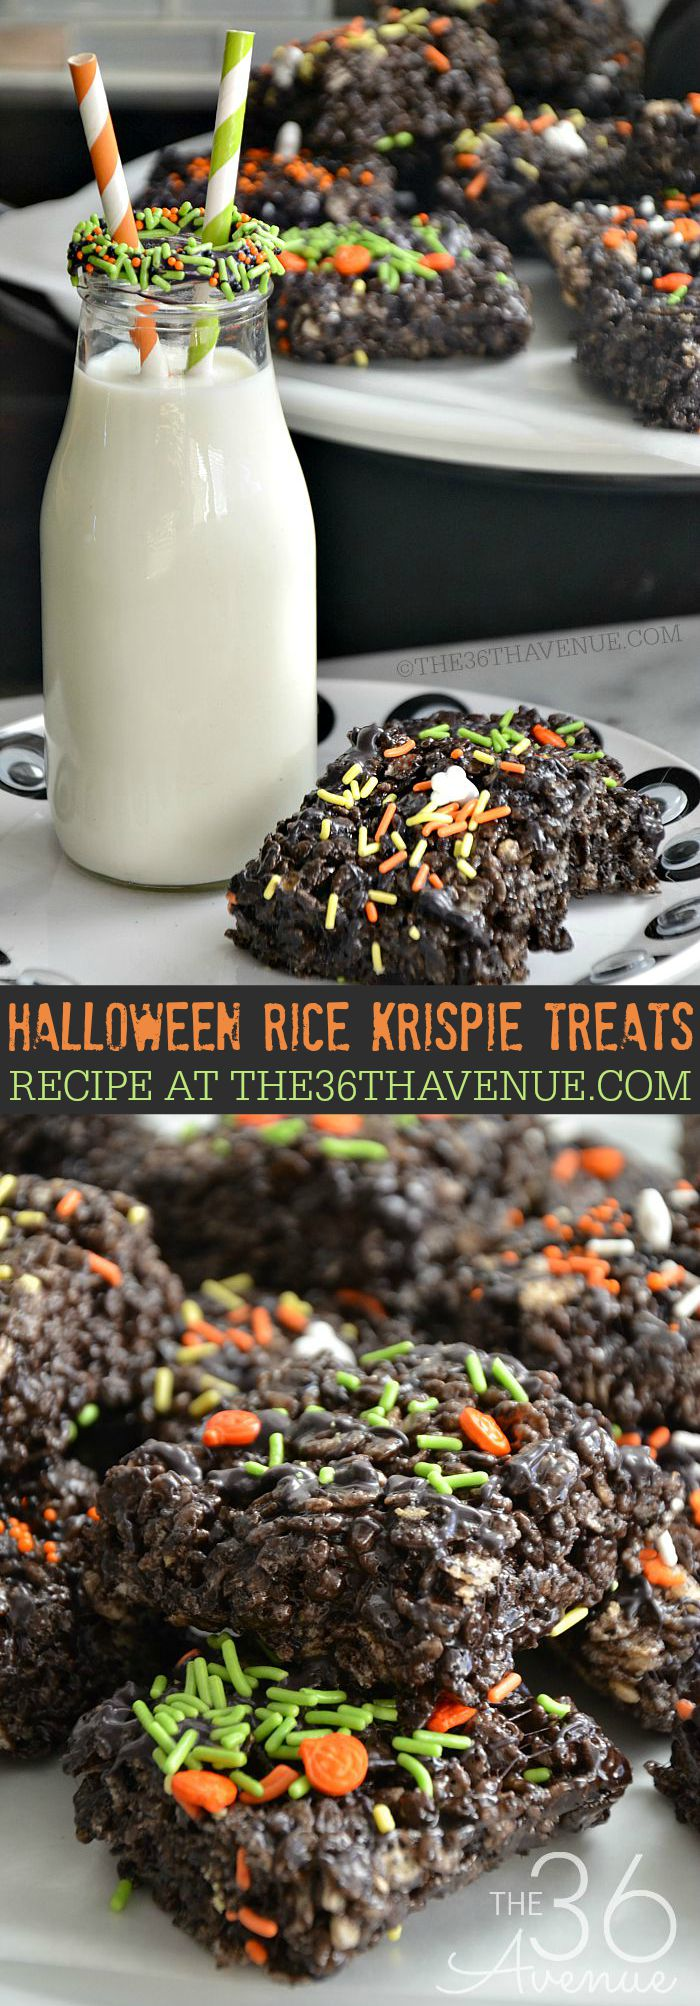 Halloween Rice Krispie Treats at the36thavenue.com ...Click for recipe here : https://www.the36thavenue.com/halloween-rice-krispie-treats/